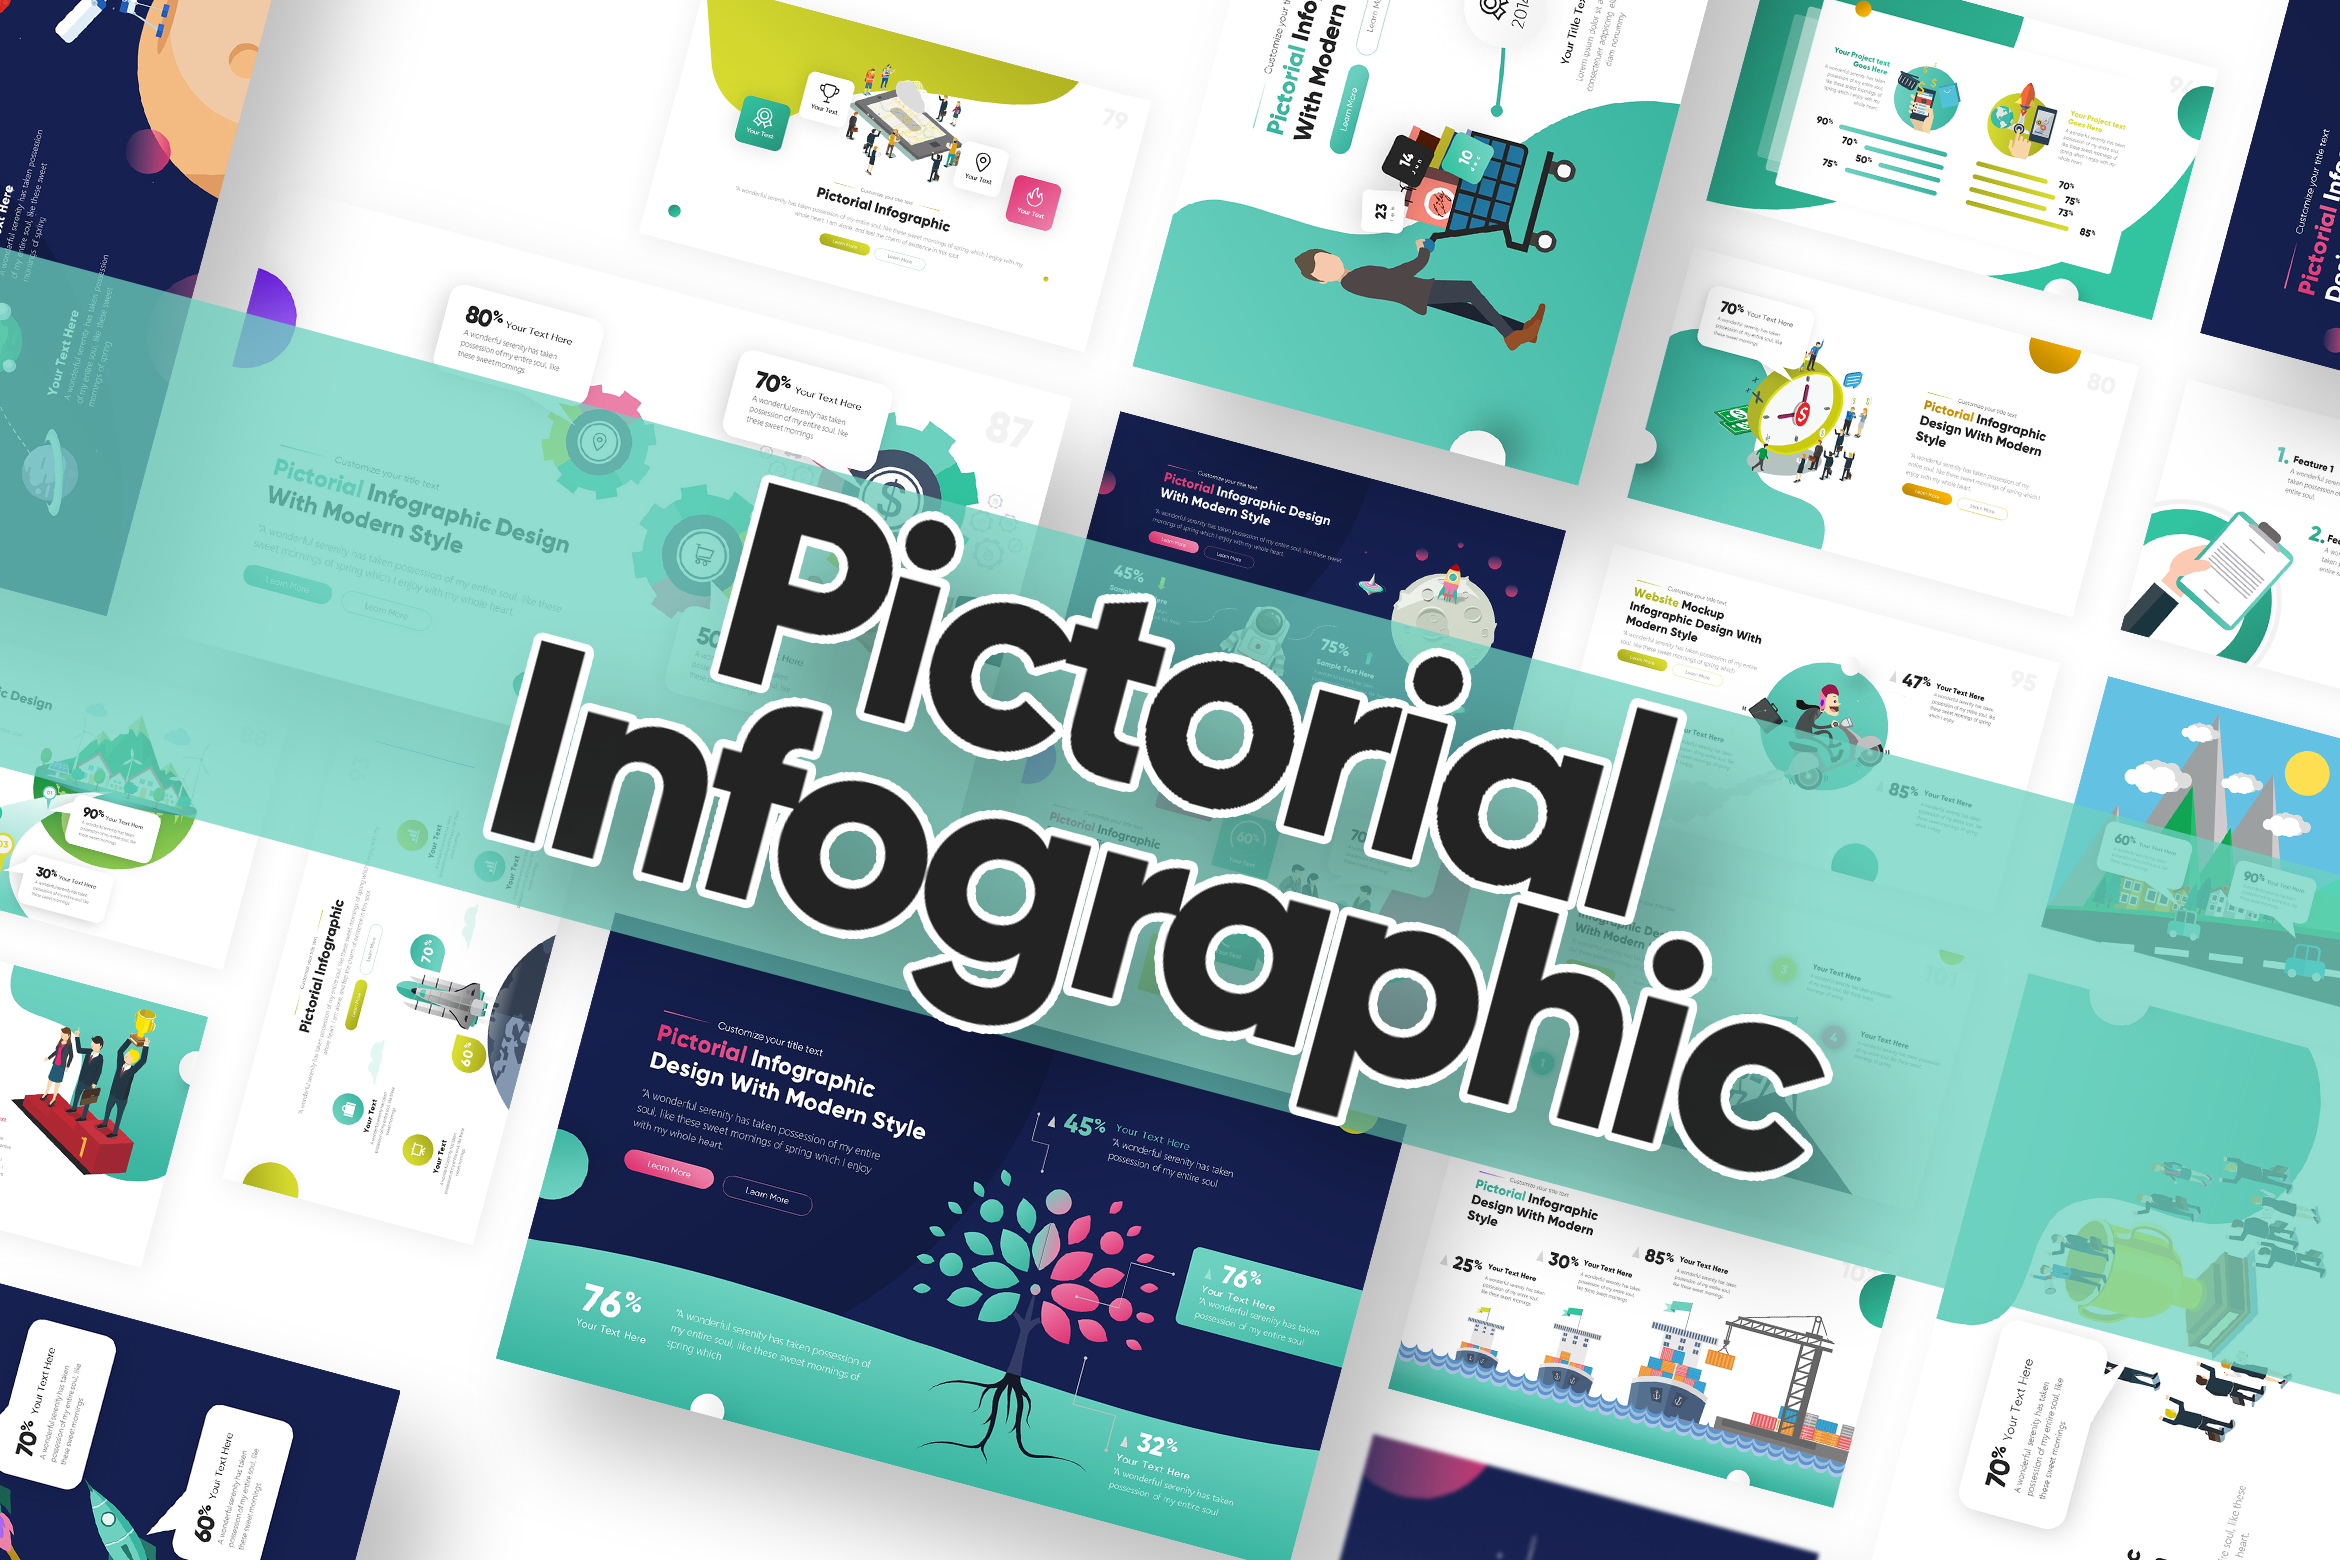 Pictorial Infographic